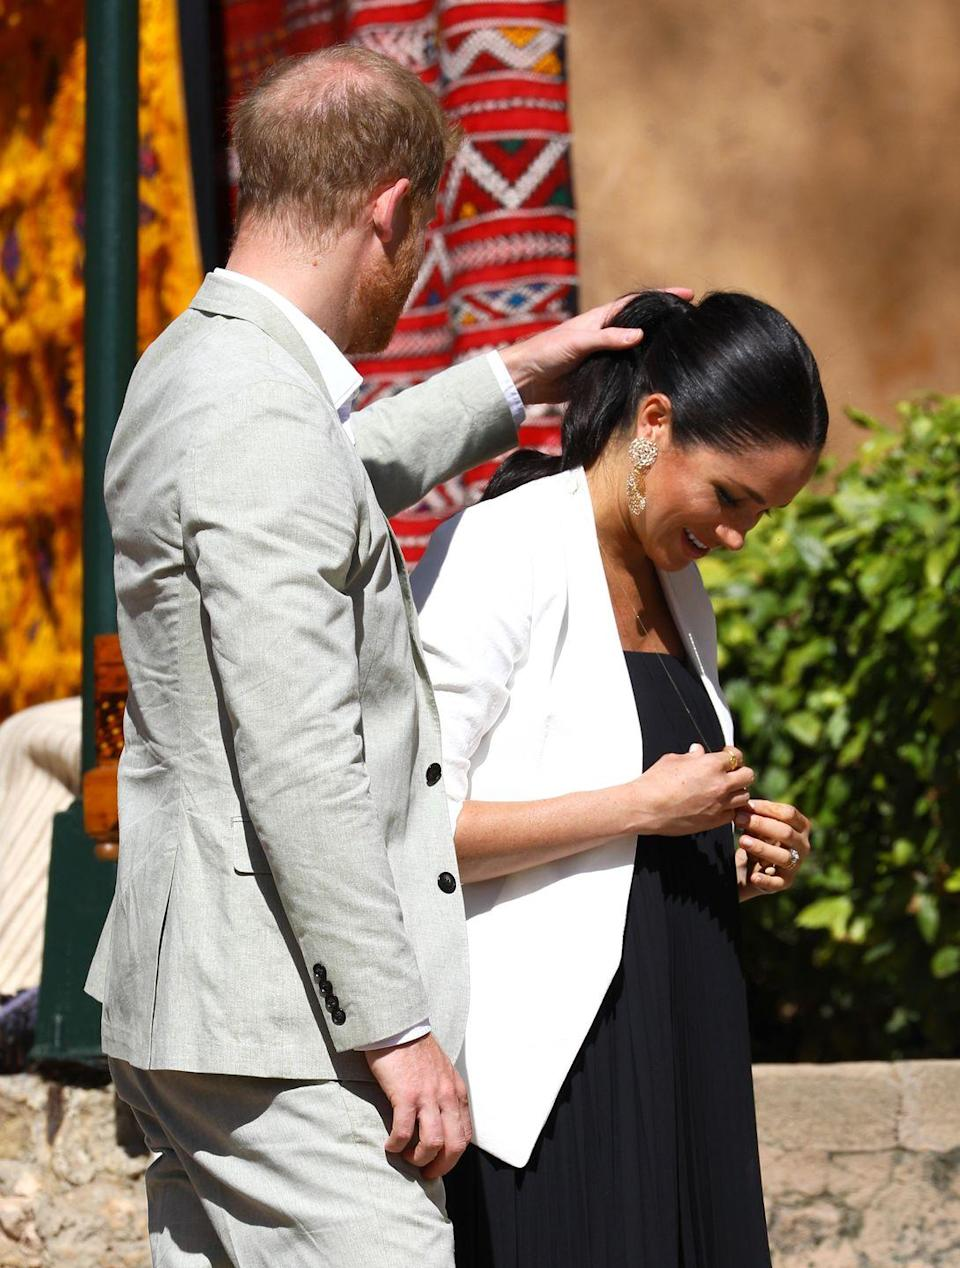 <p>Prince Harry took a moment from his tour of Morocco to help fix his wife's ponytail. The gesture was more endearing than goofy, but tremendously candid. </p>